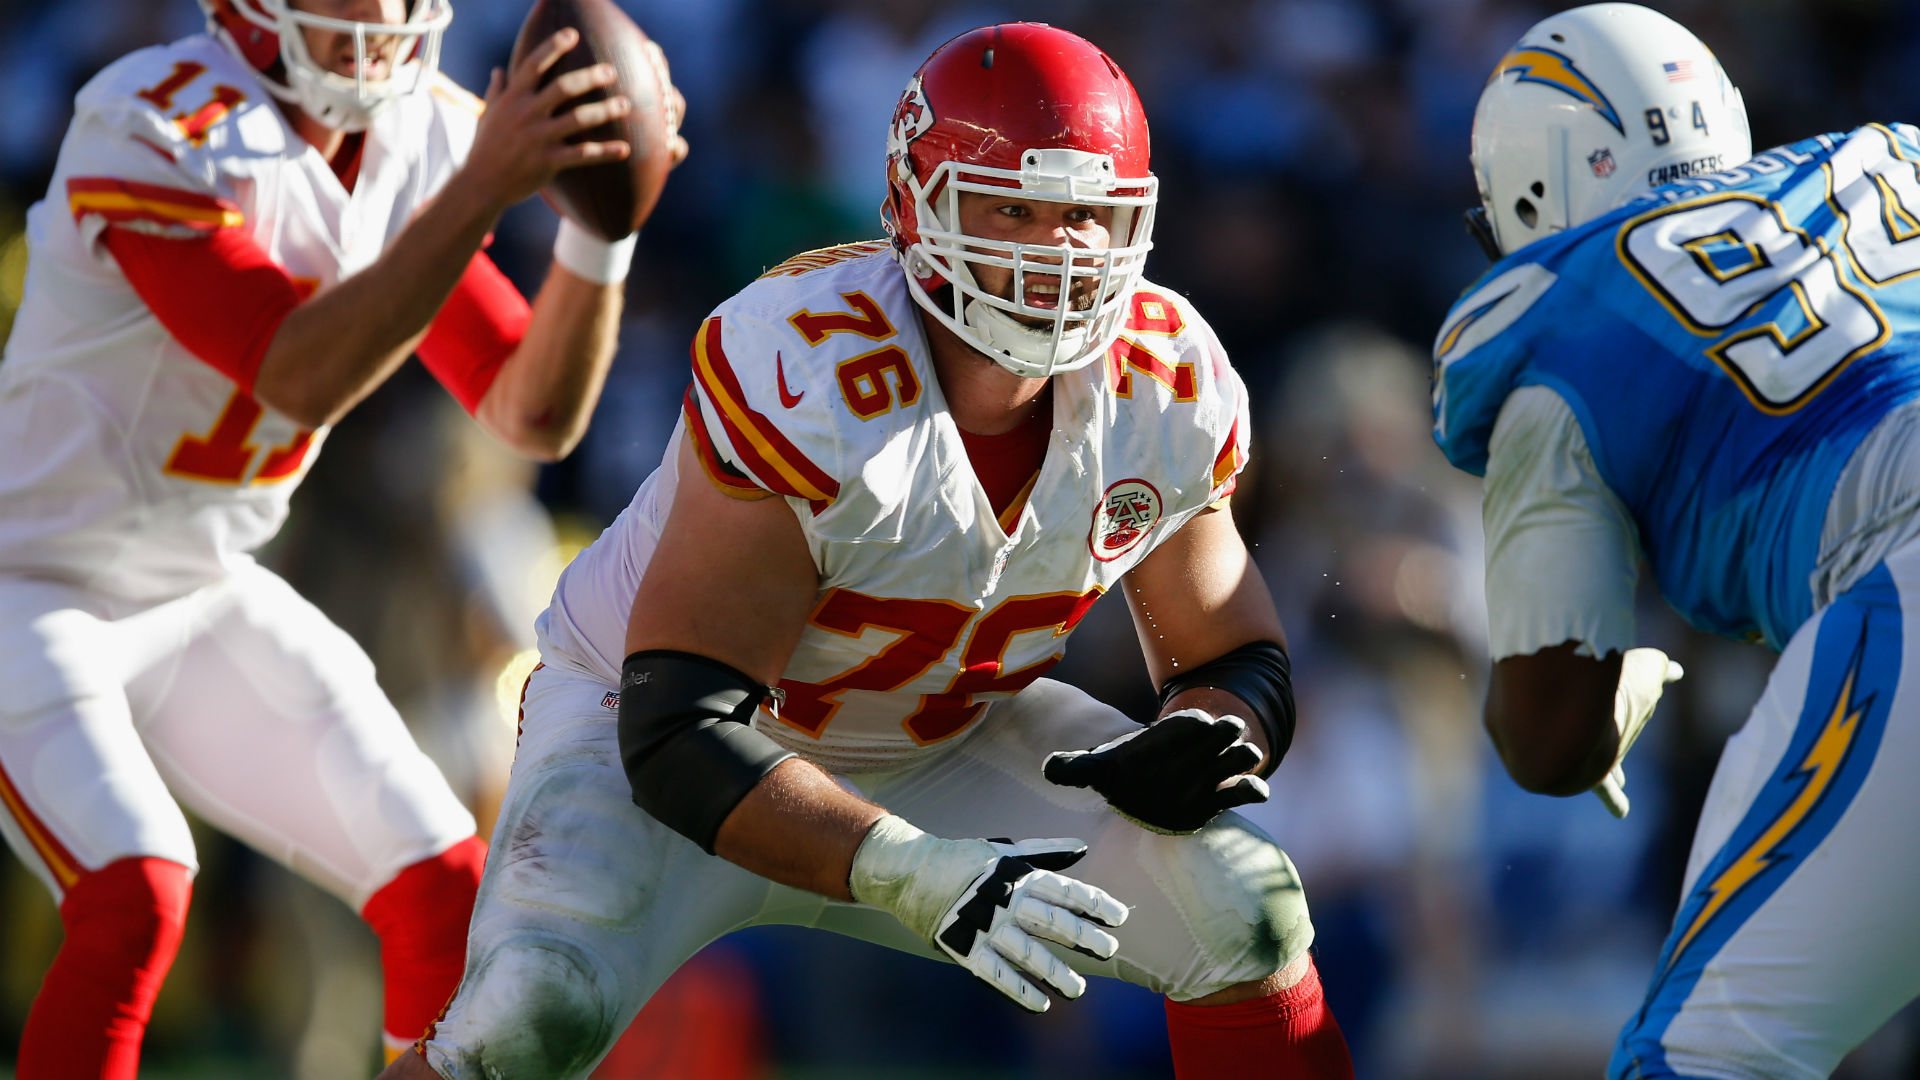 Laurent-duvernay-tardif-getty-images_1dvqakijcfa0i1nppnebifbzf5